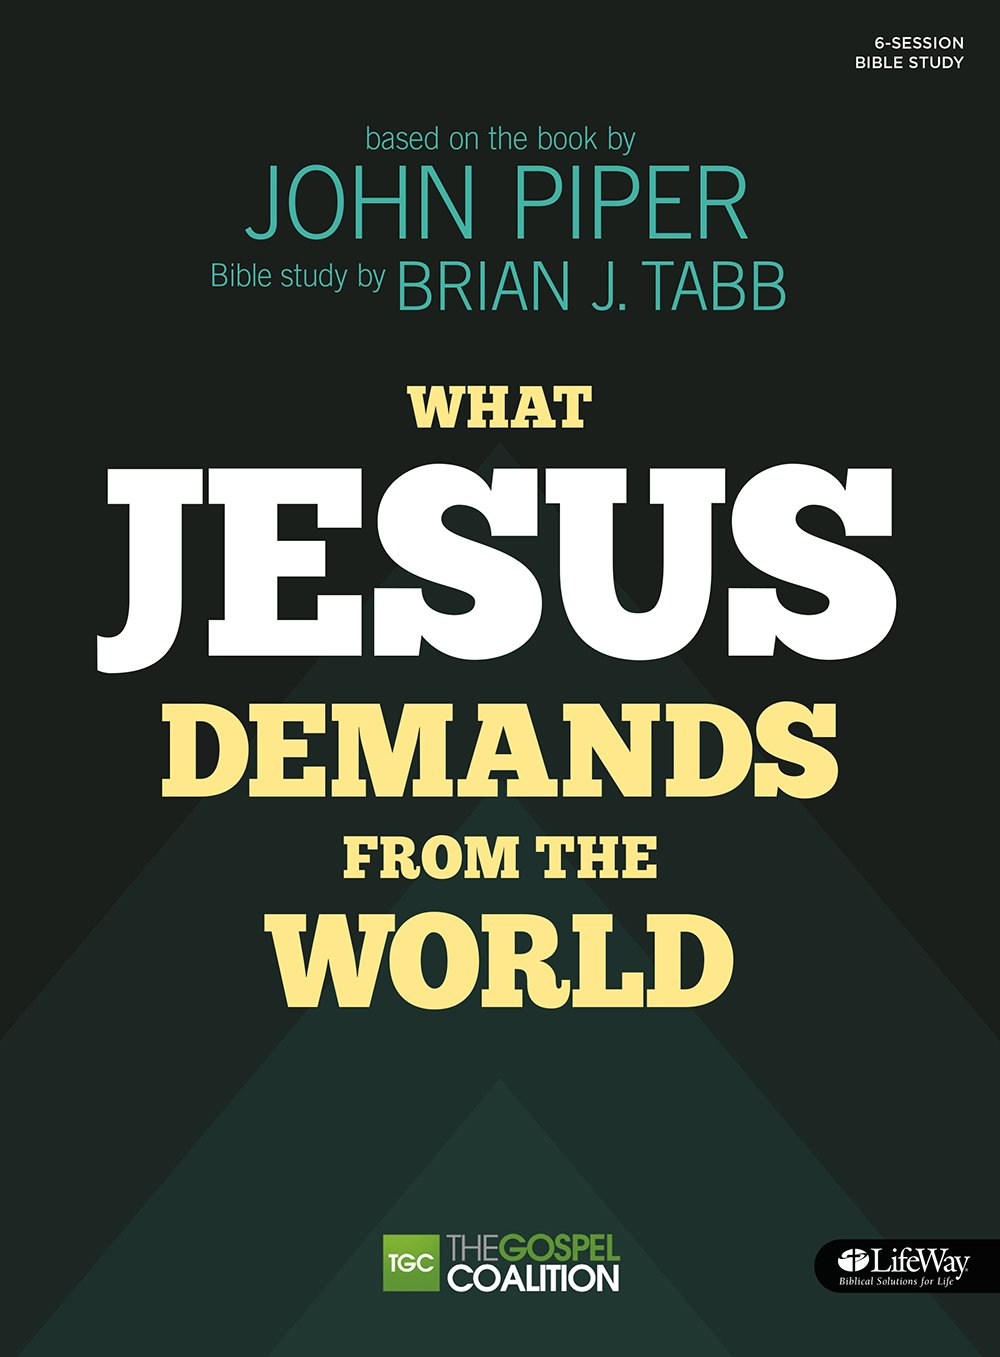 The Gospel Coalition (TGC) - What Jesus Demands From the World (Member Book):  John Piper, Brian J. Tabb: 9781430032076: Amazon.com: Books